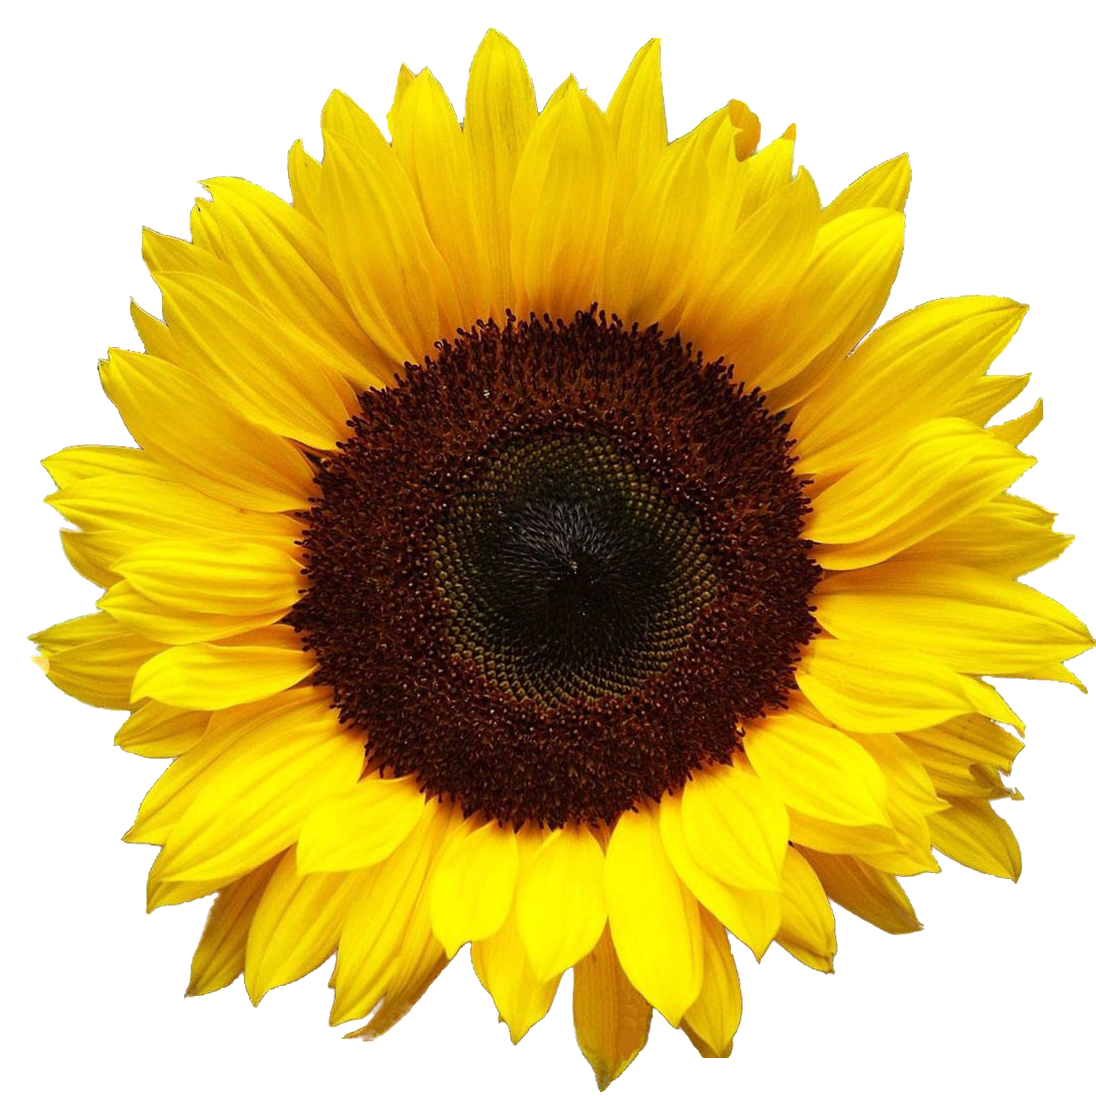 sunflowers-png-17.png